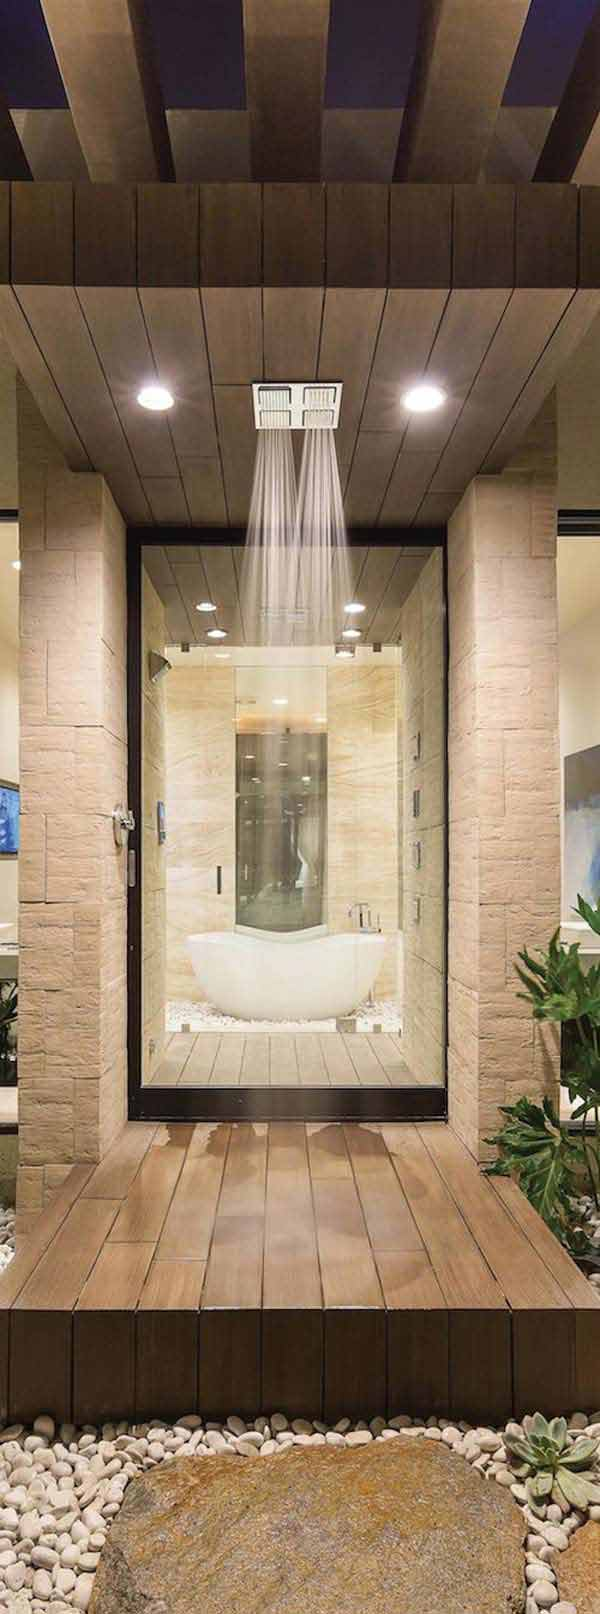 25+ Must See Rain Shower Ideas for Your Dream Bathroom ... on Contemporary:kkgewzoz5M4= Small Bathroom Ideas  id=80927